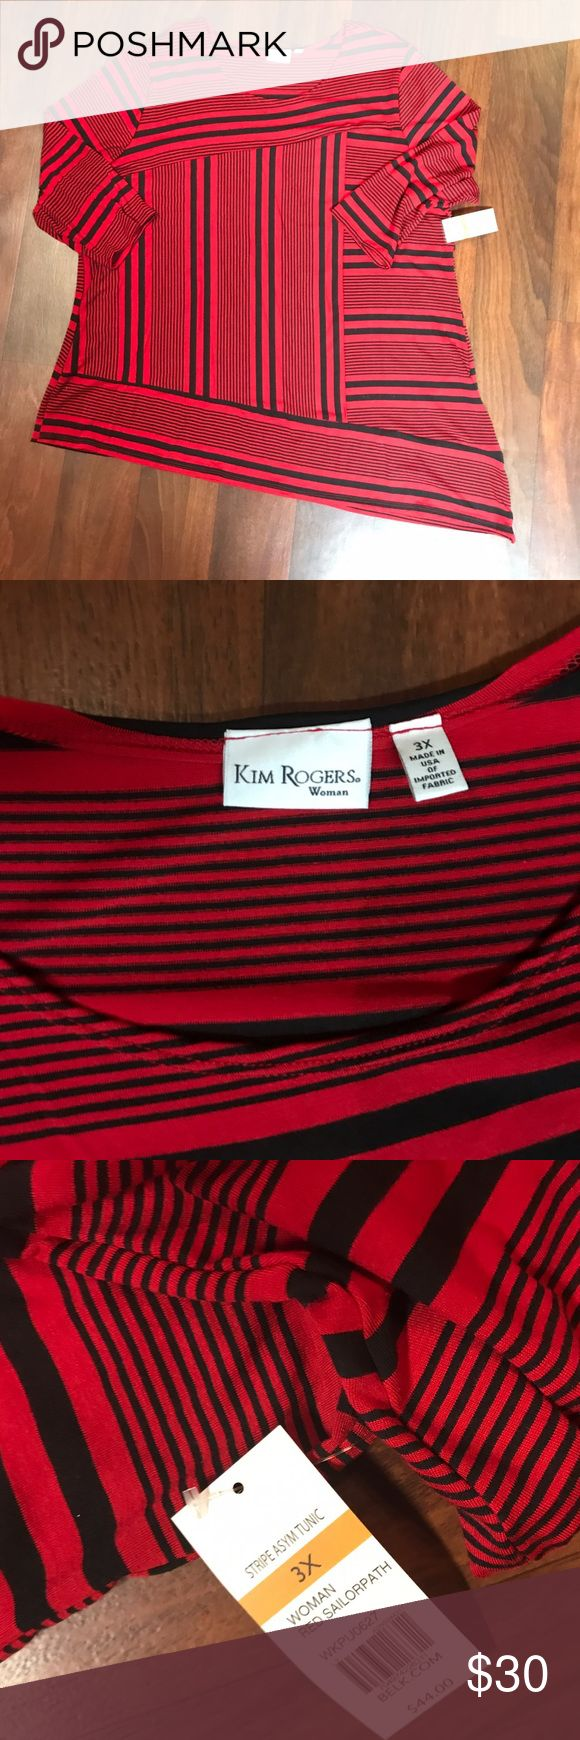 Kim Rogers Plus Size Red and Black Stripe Top 3X NWT Kim Rogers Plus Size Red & Black Striped Top. Size 3X. 3/4 sleeves. All items come from smoke free and pet free home. I ship daily and do bundle discounfs. Kim Rogers Tops Blouses